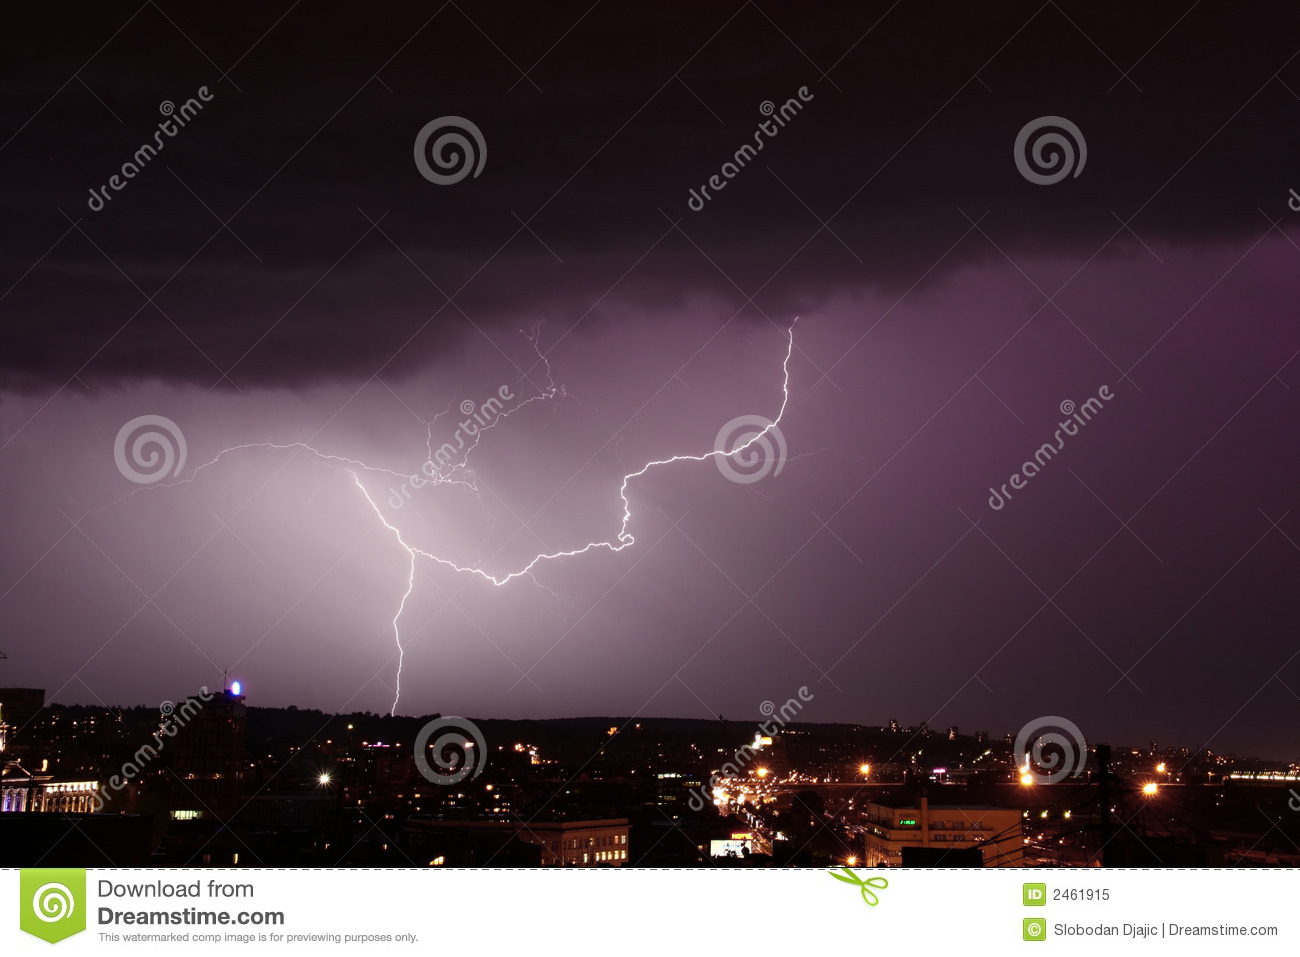 Storm and lightning over city